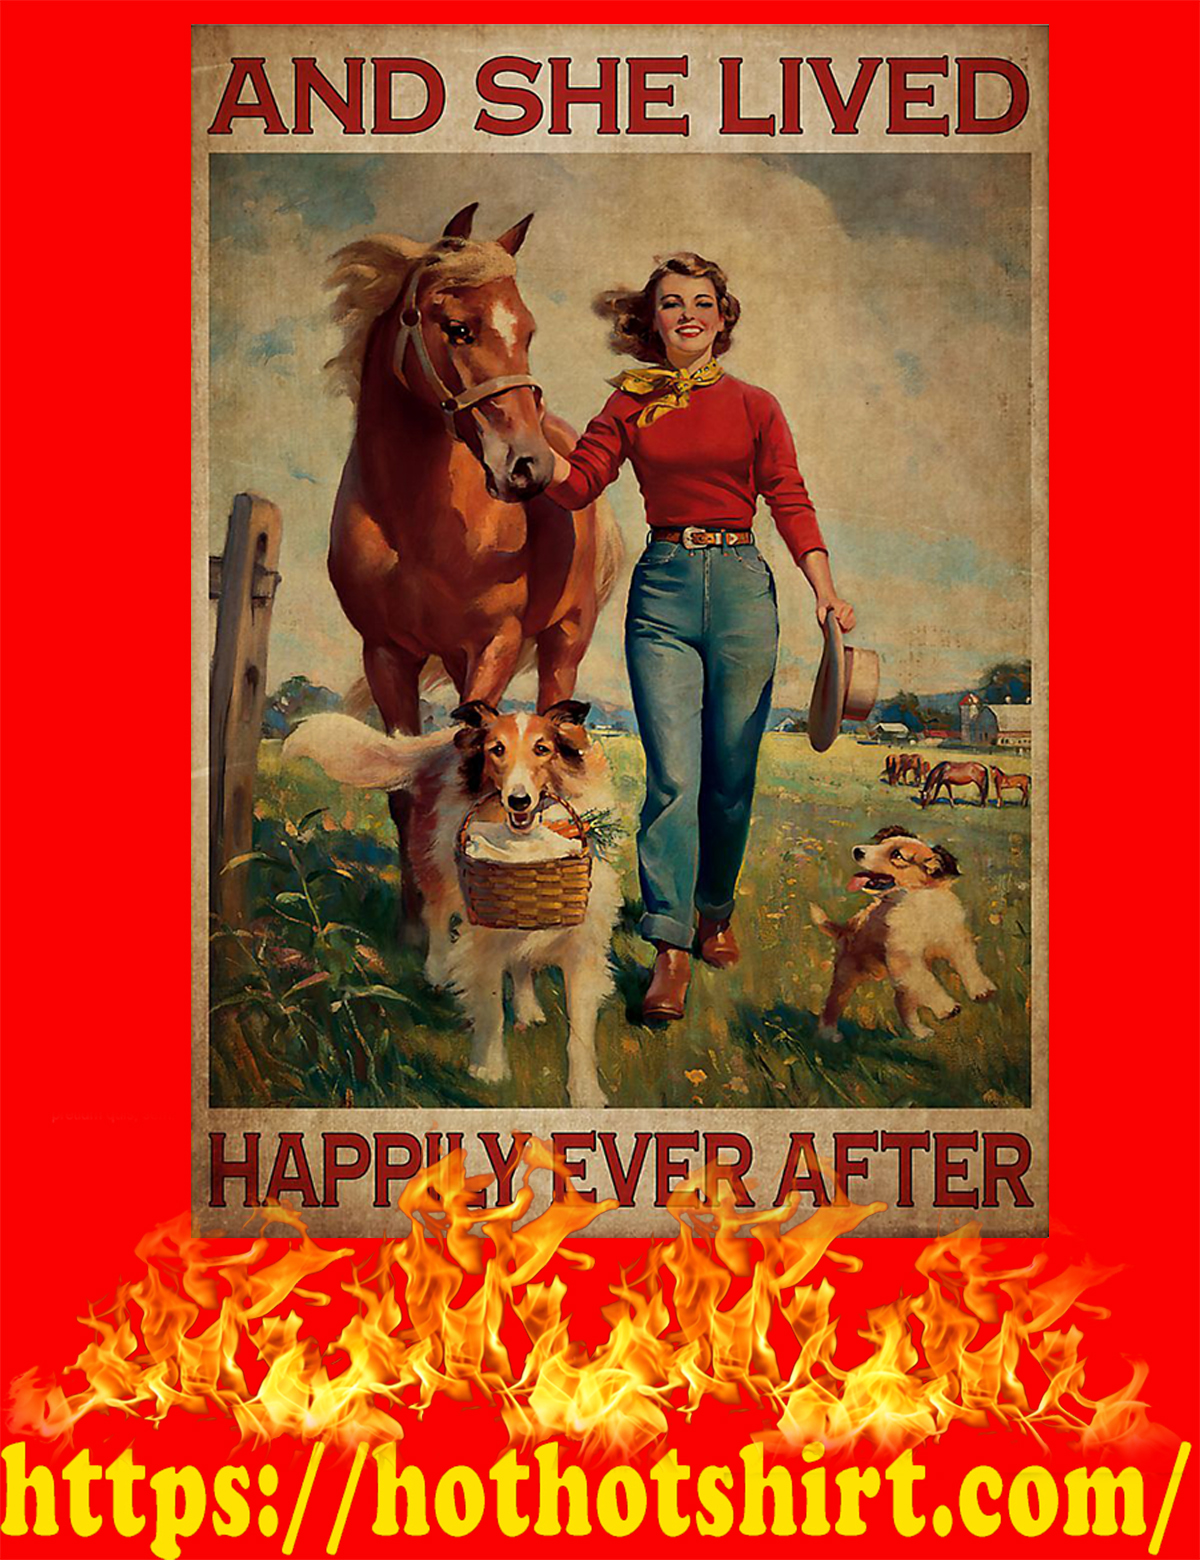 Horse and dog And she lived happily ever after poster - A3